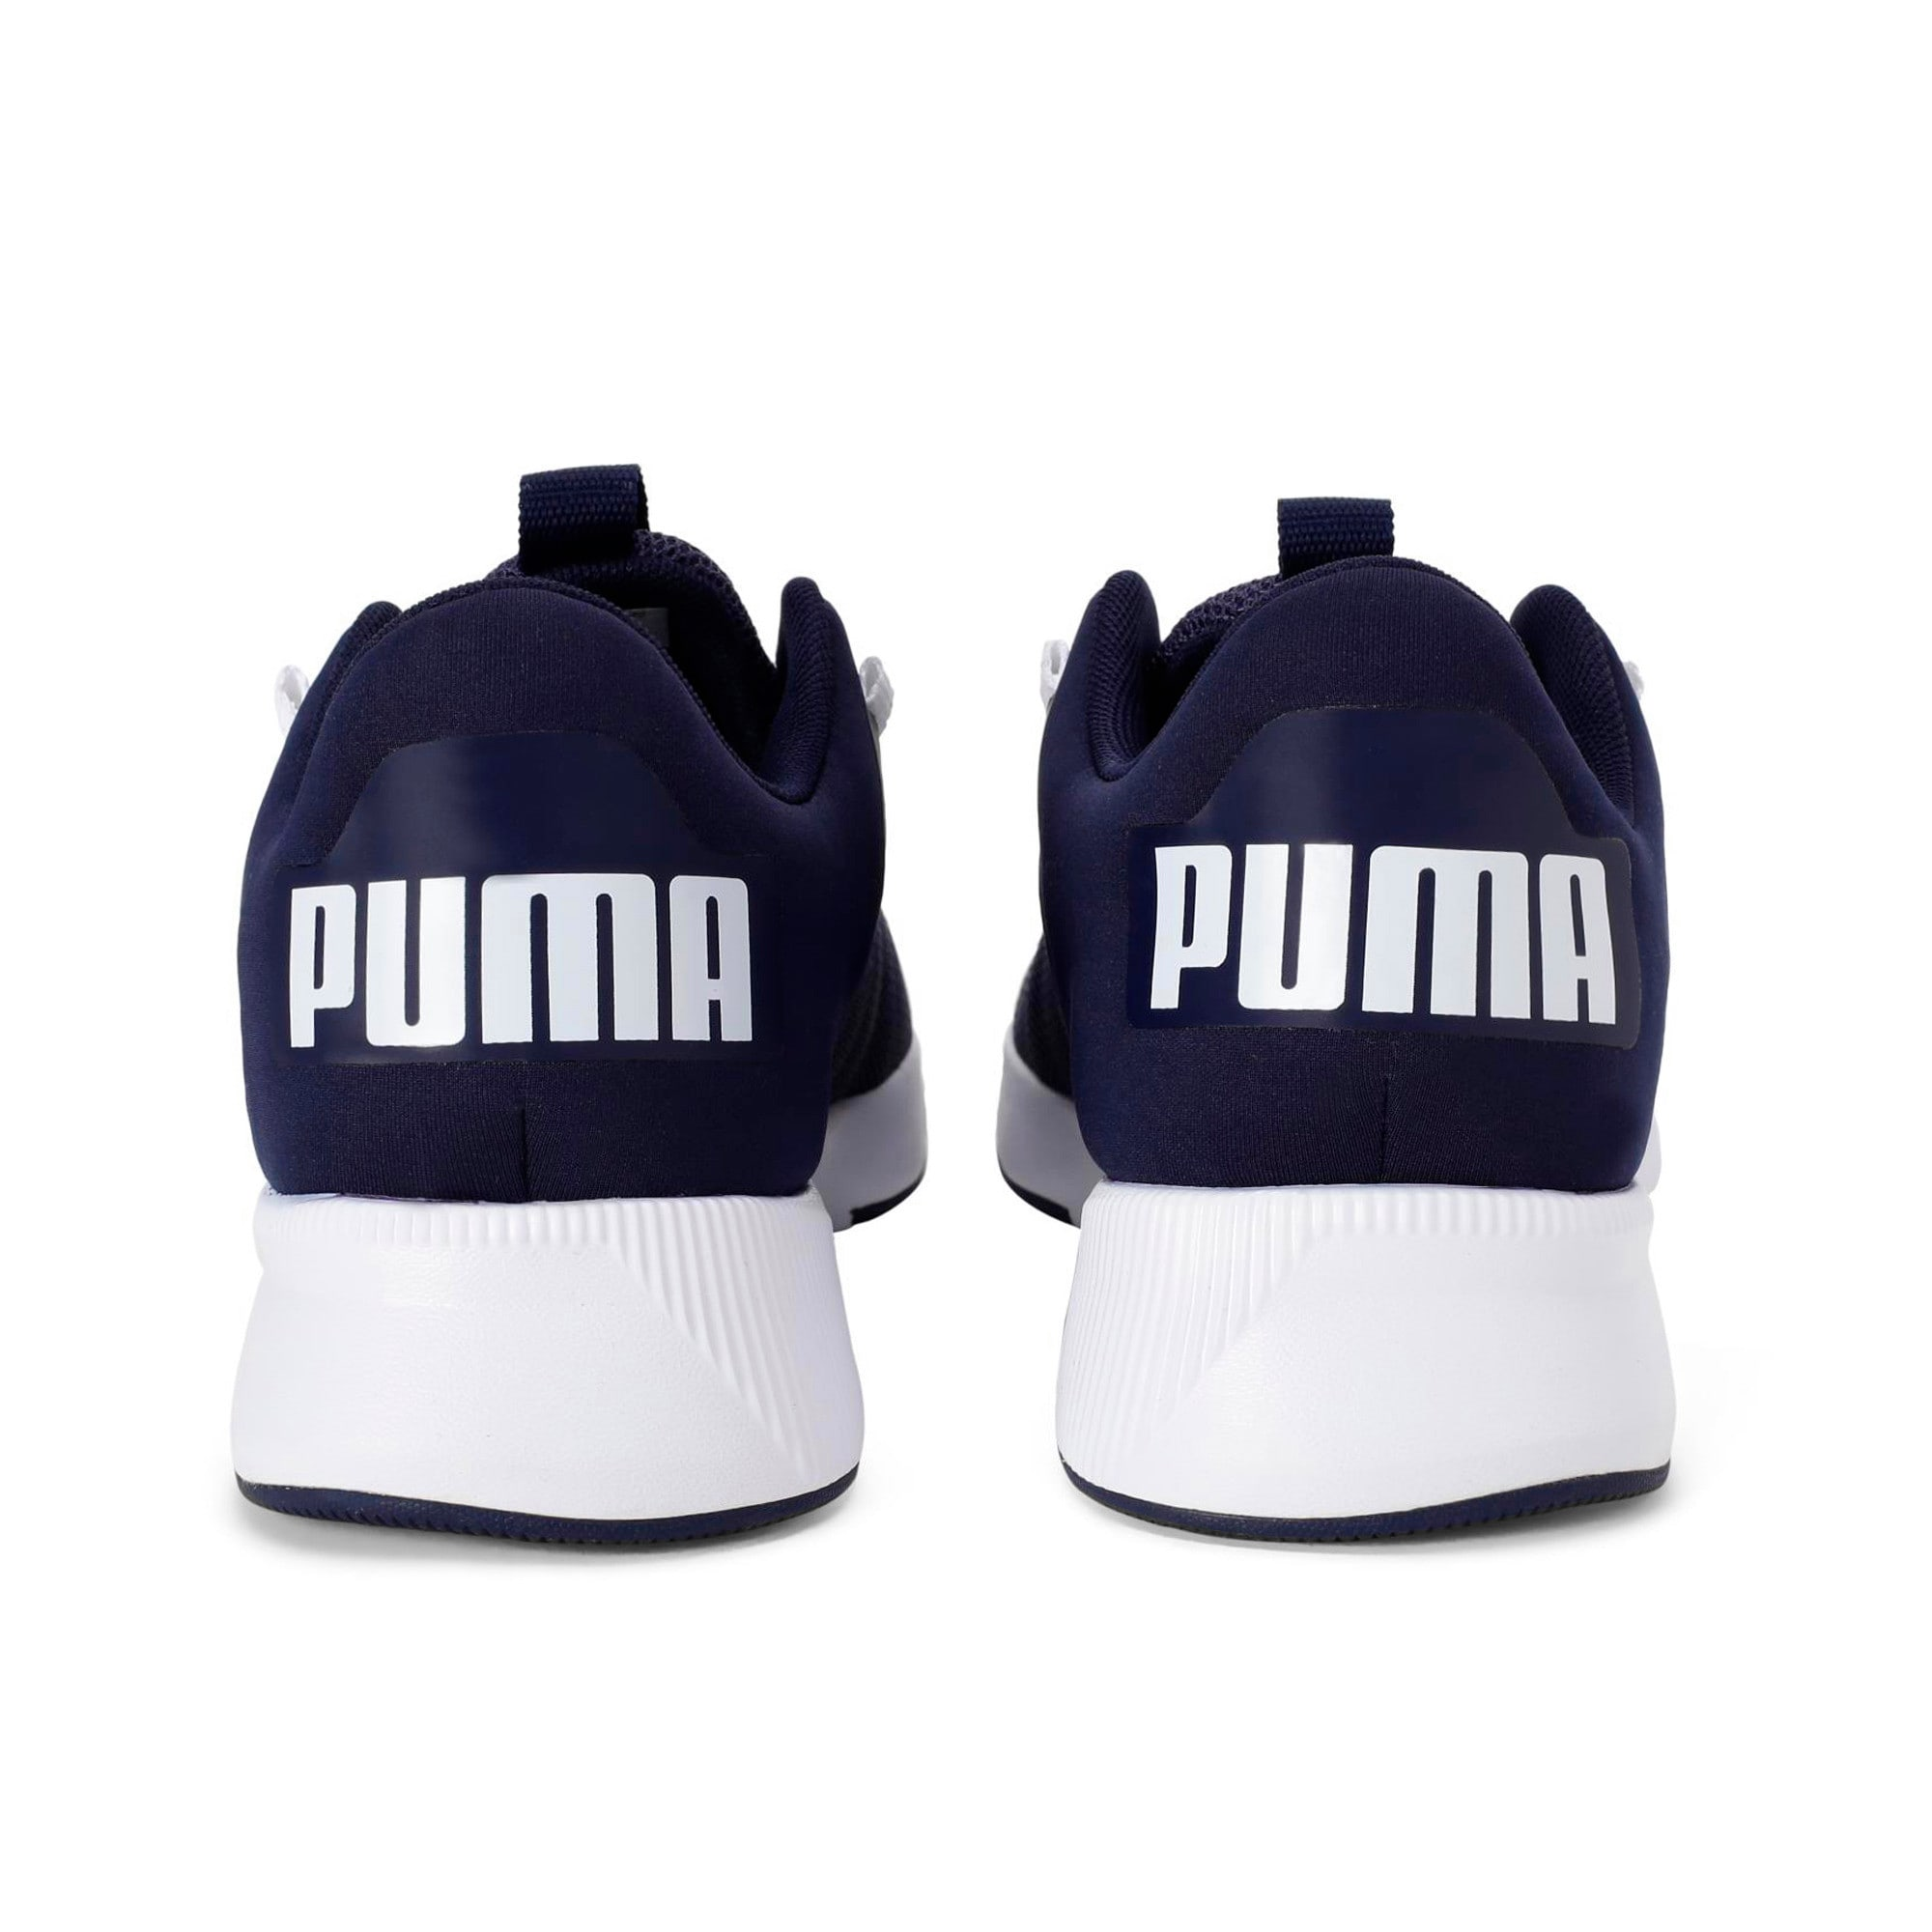 Thumbnail 3 of Flyer Modern Running Shoes, Peacoat-Puma White, medium-IND